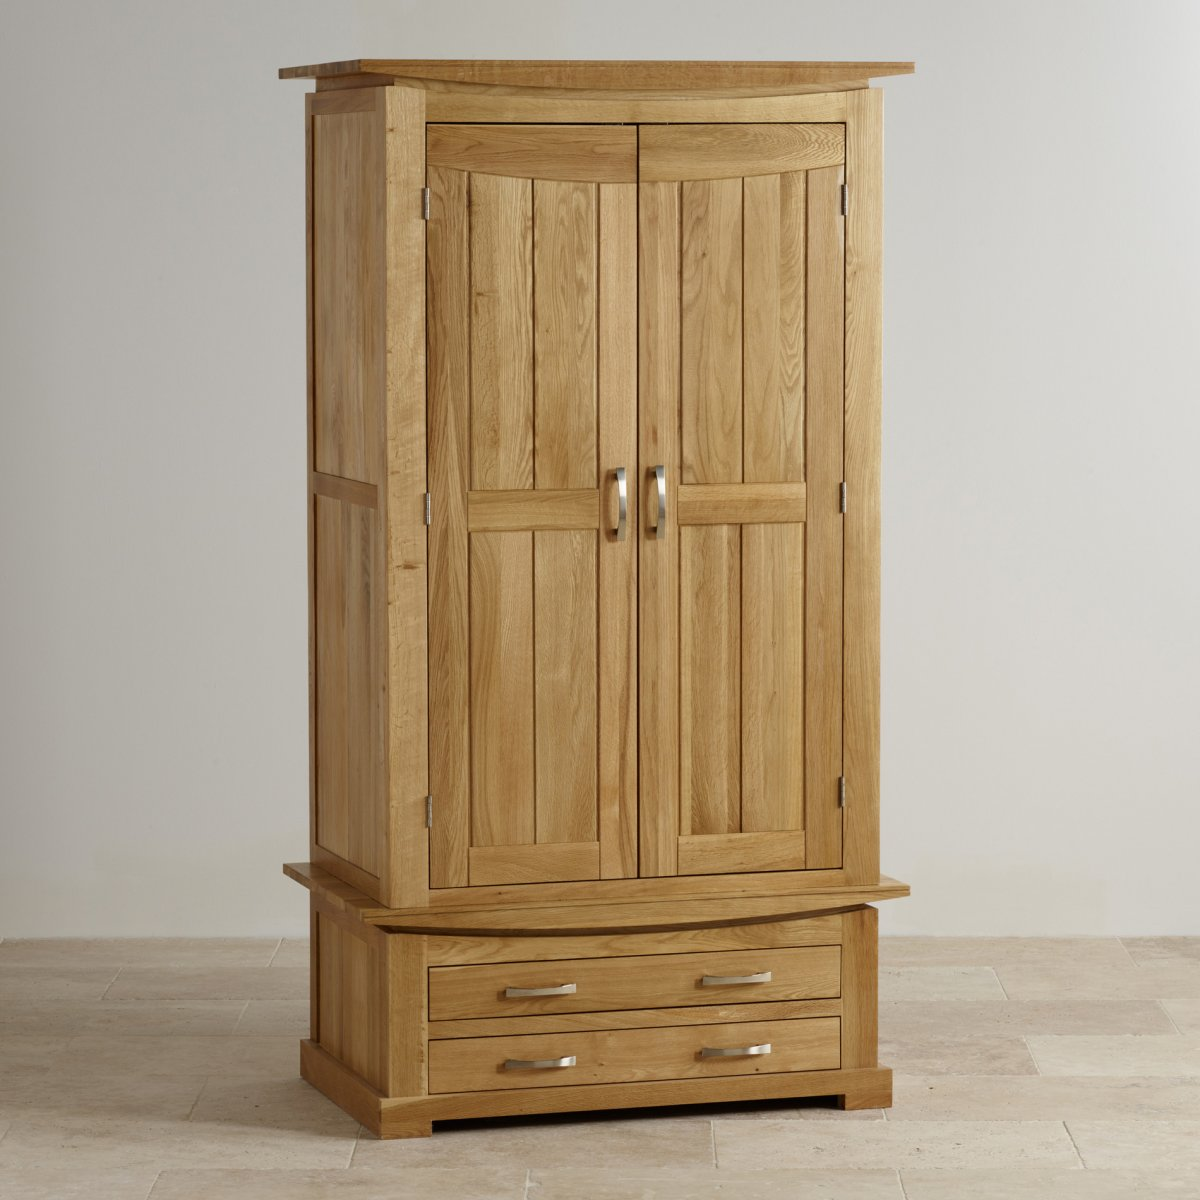 tokyo double wardrobe in natural solid oak oak furniture. Black Bedroom Furniture Sets. Home Design Ideas